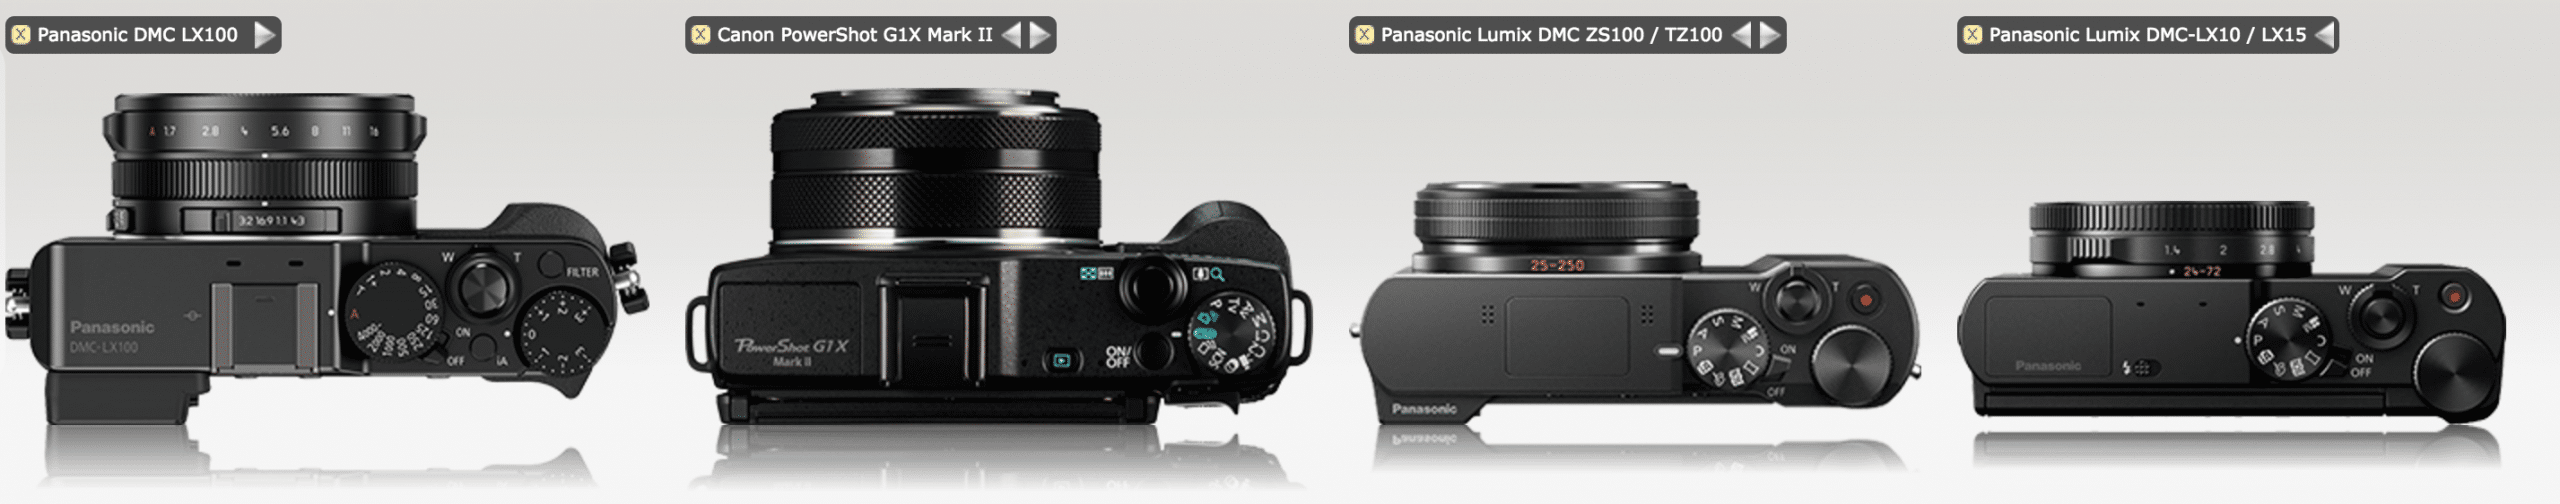 Outdoors Camera Shootout 10 Excellent Cameras To Consider As Your Panasonic Lumix Dmc Lx10 Digital Black I Do Have Say That Could Gone With Just About All Of These And Depending On Local Pricing Availability Any The Above Would